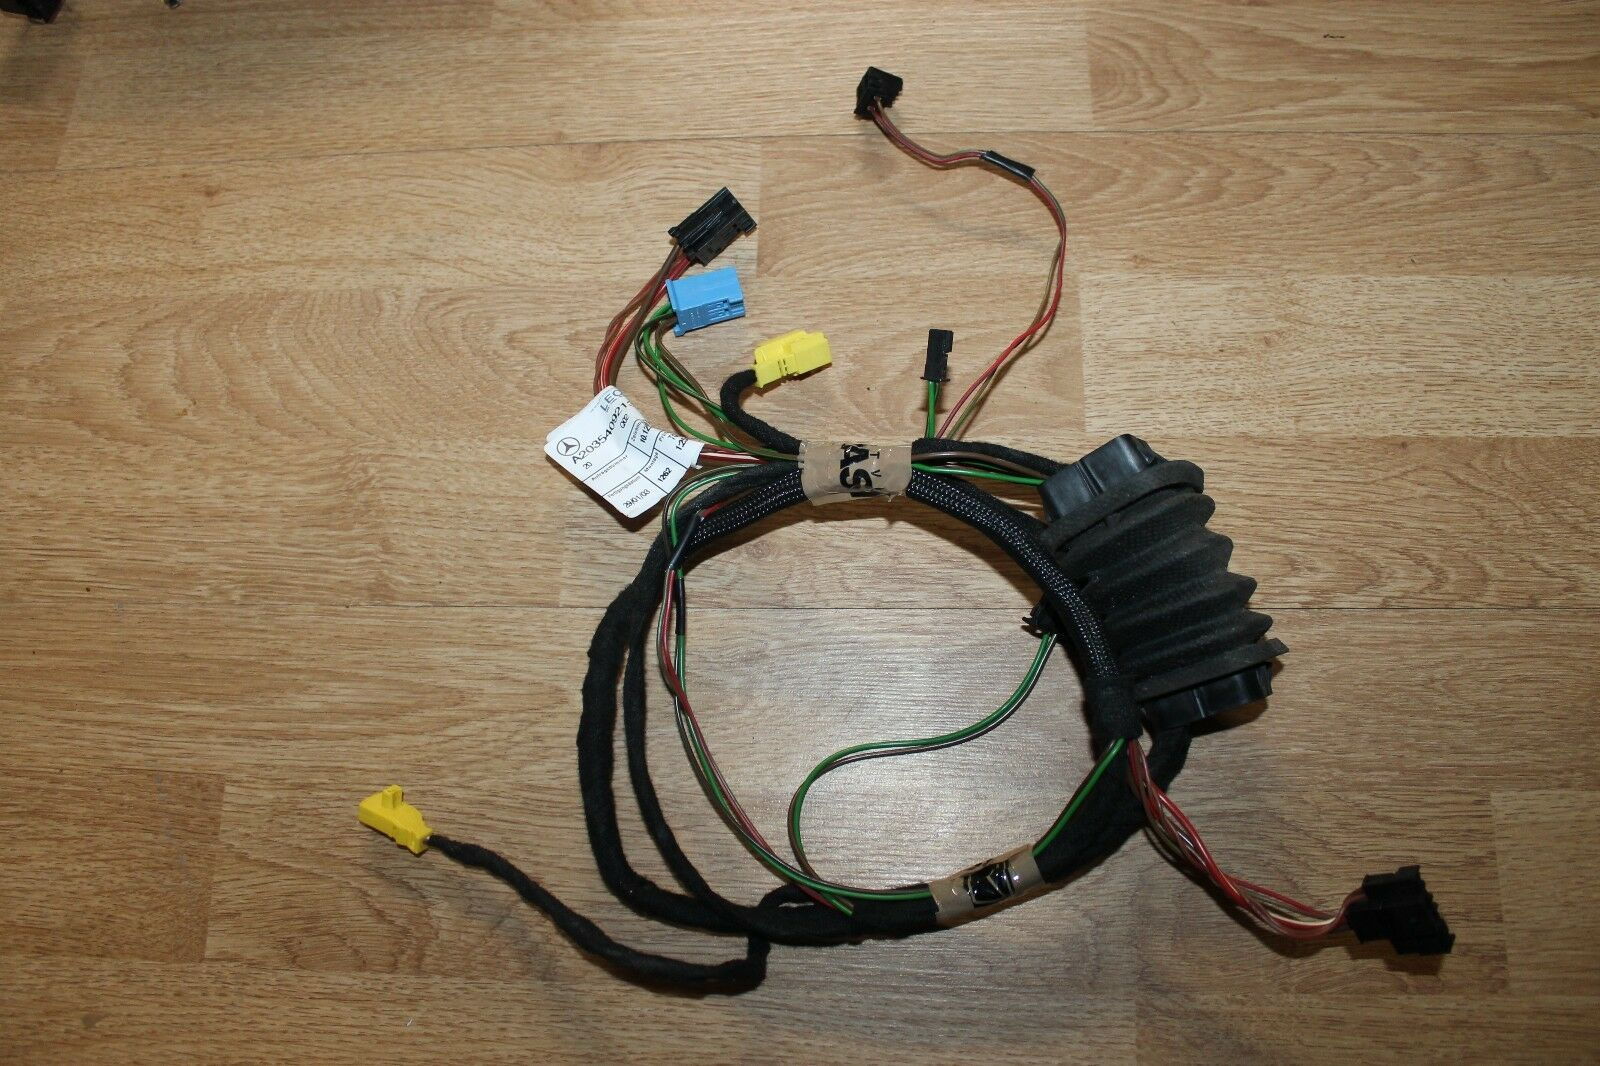 Mercedes Benz Mb C Class W203 Front Right Left Door Wiring Loom E Car Stereo Radio Harness Adapter Iso 2035409213 1 Of 2only Available